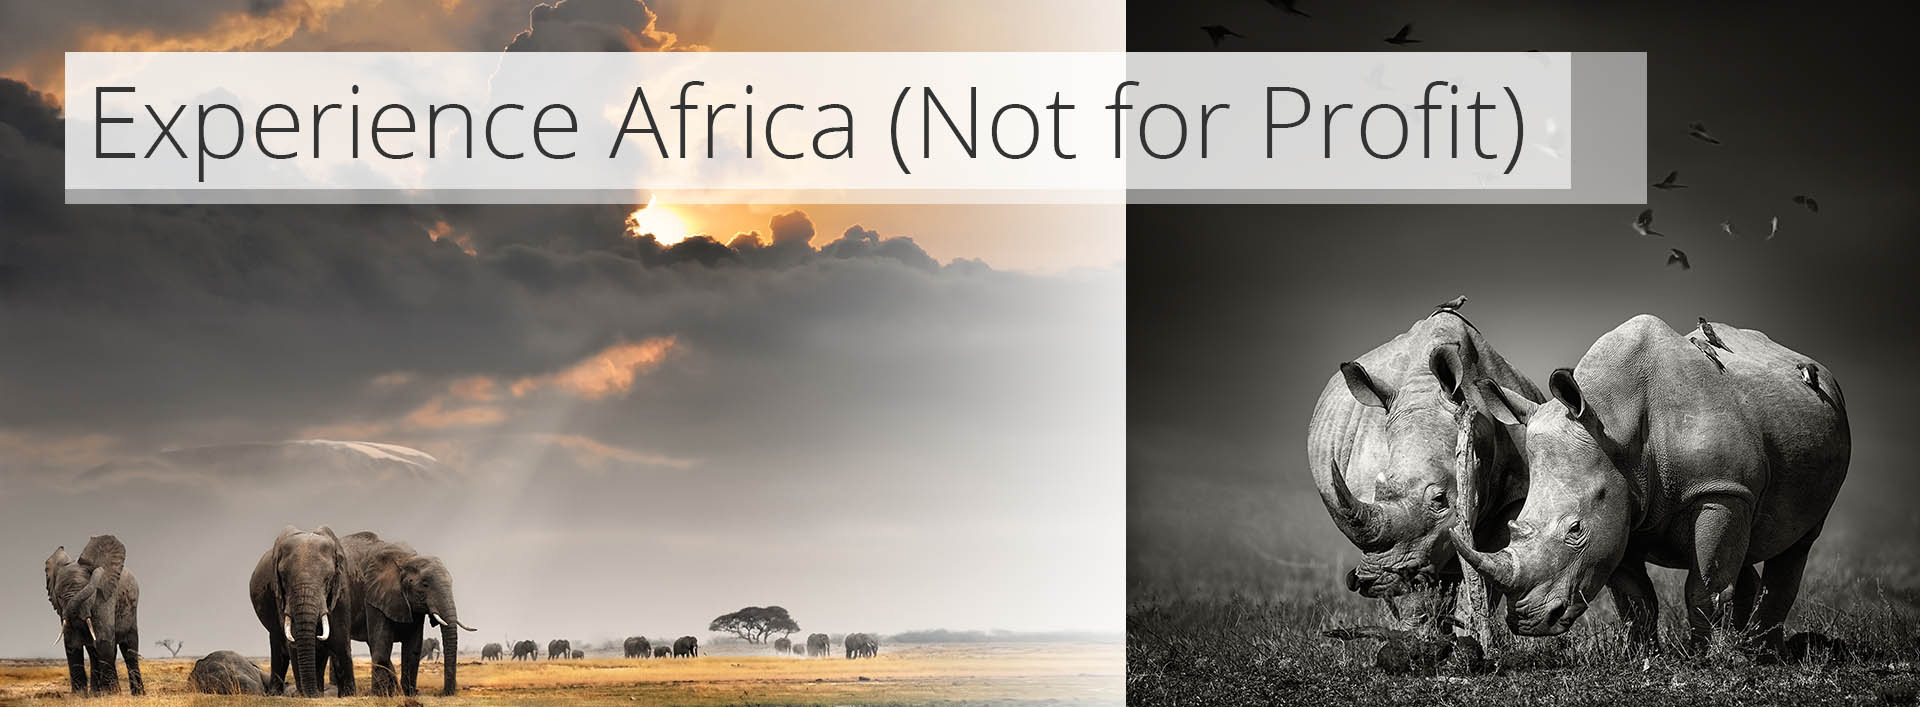 Experience Africa (Not for profit)